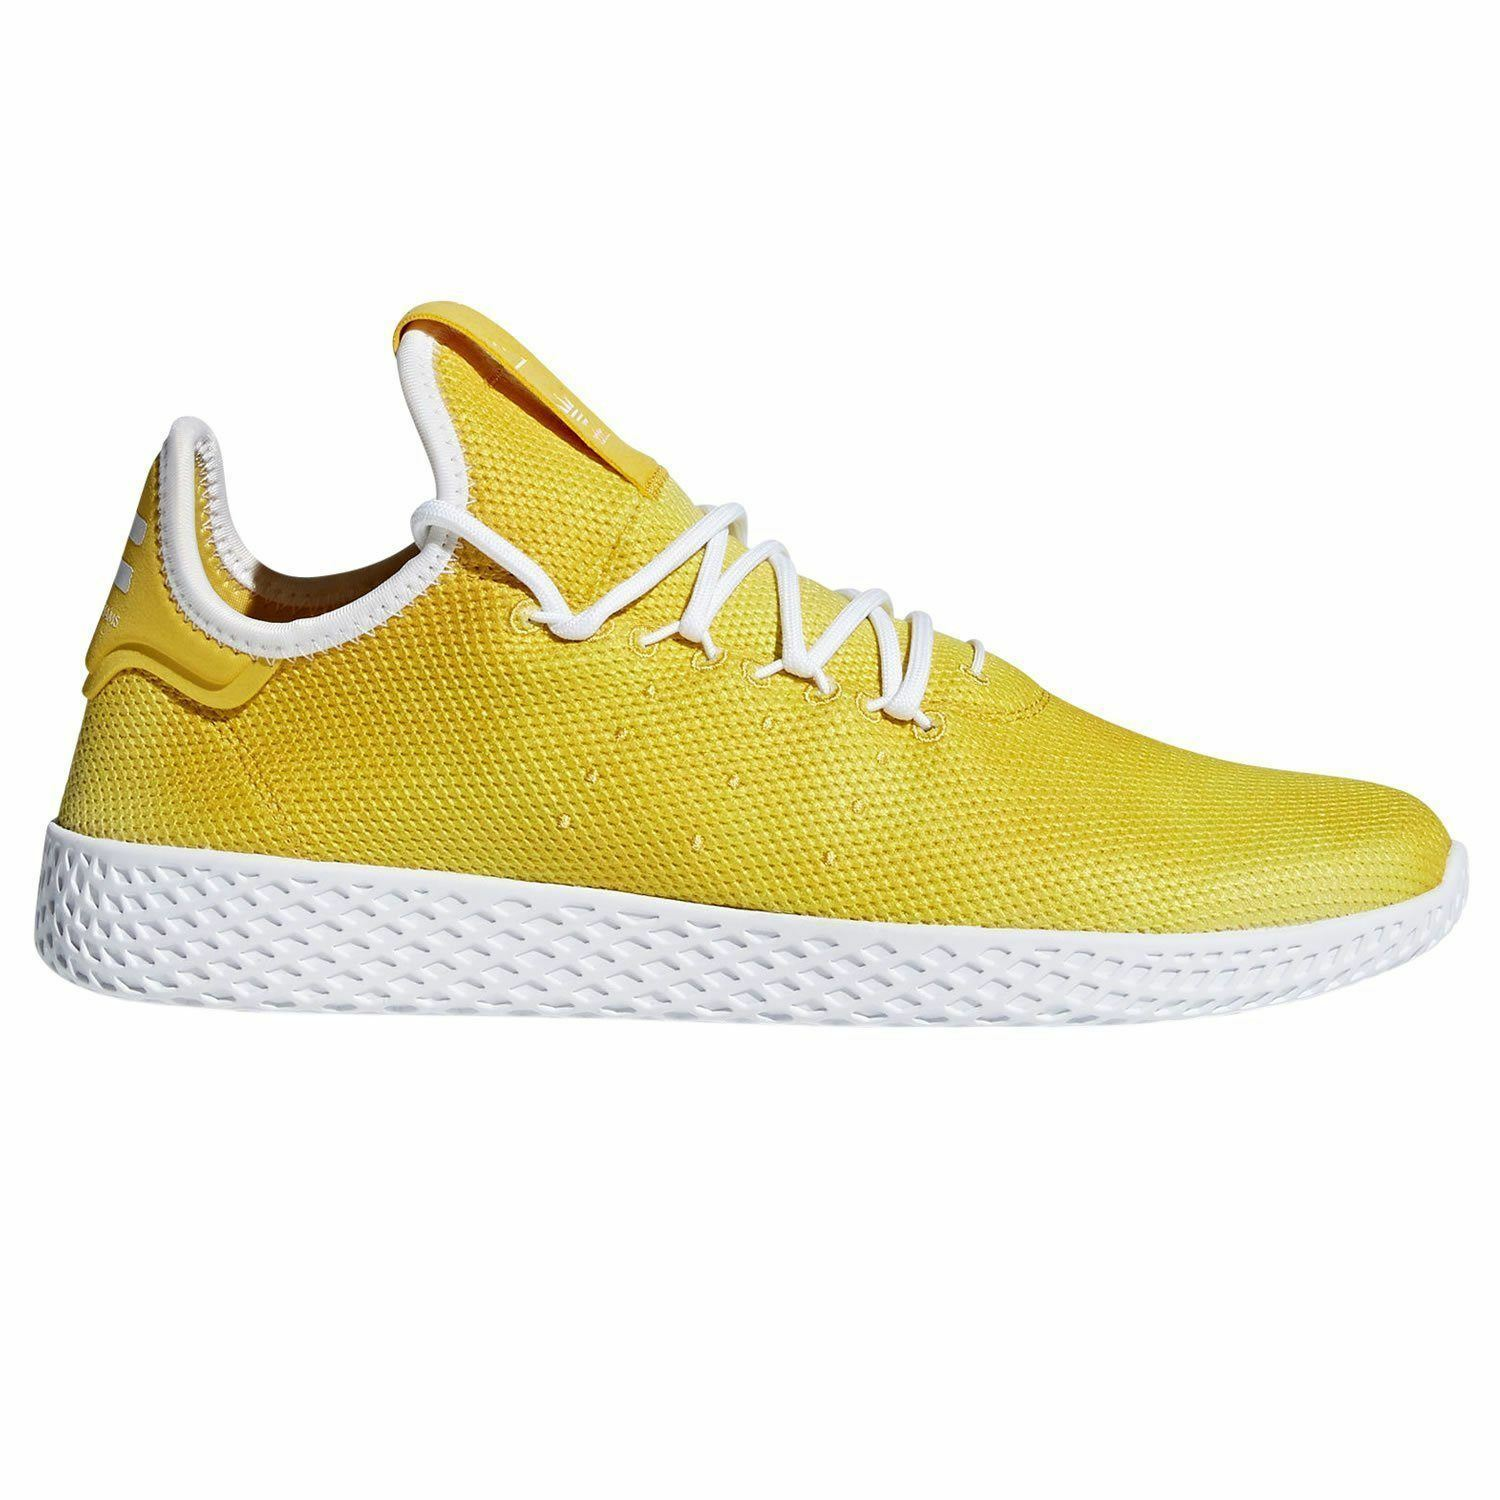 adidas PHARRELL WILLIAMS HU TENNIS SHOES YELLOW SNEAKERS TRAINERS KICKS MEN'S